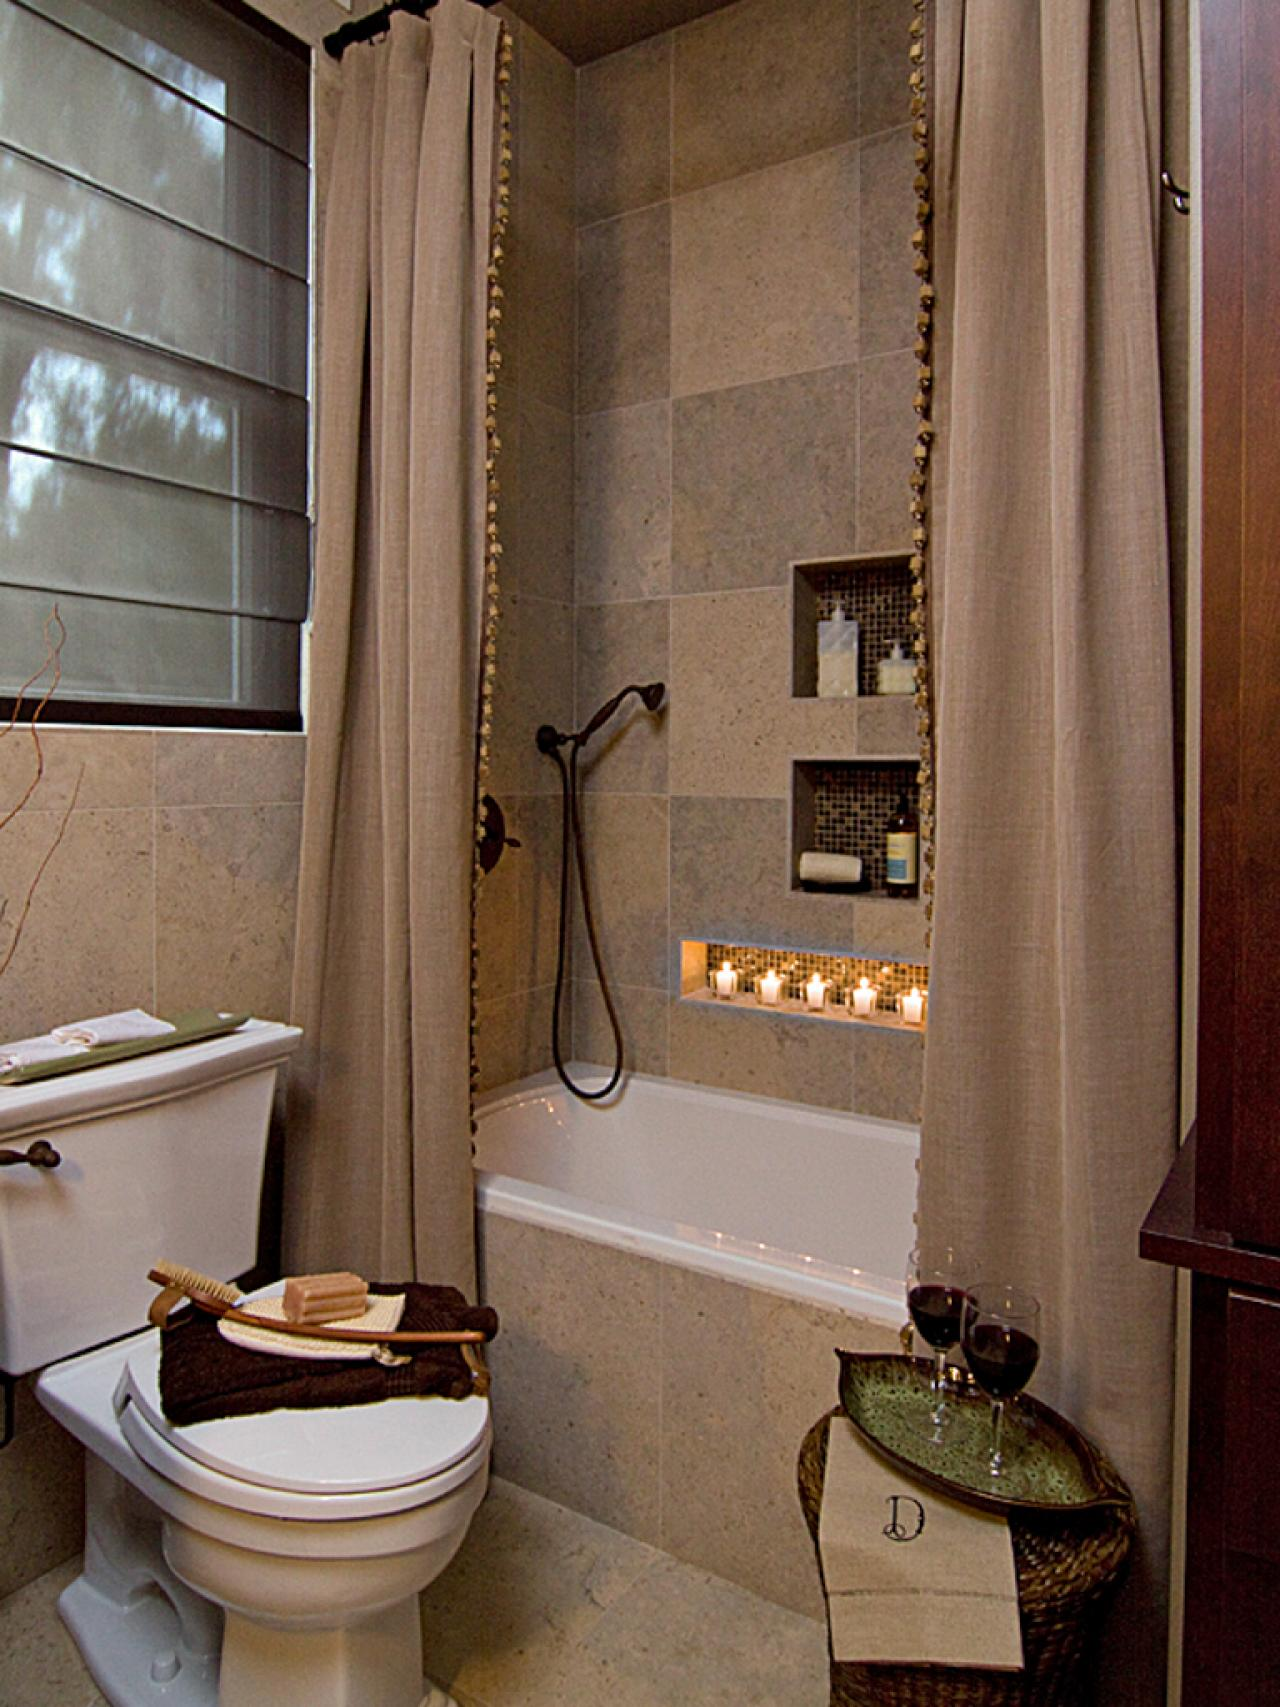 Small bathroom decorating ideas bathroom ideas designs for Hgtv small bathroom design ideas